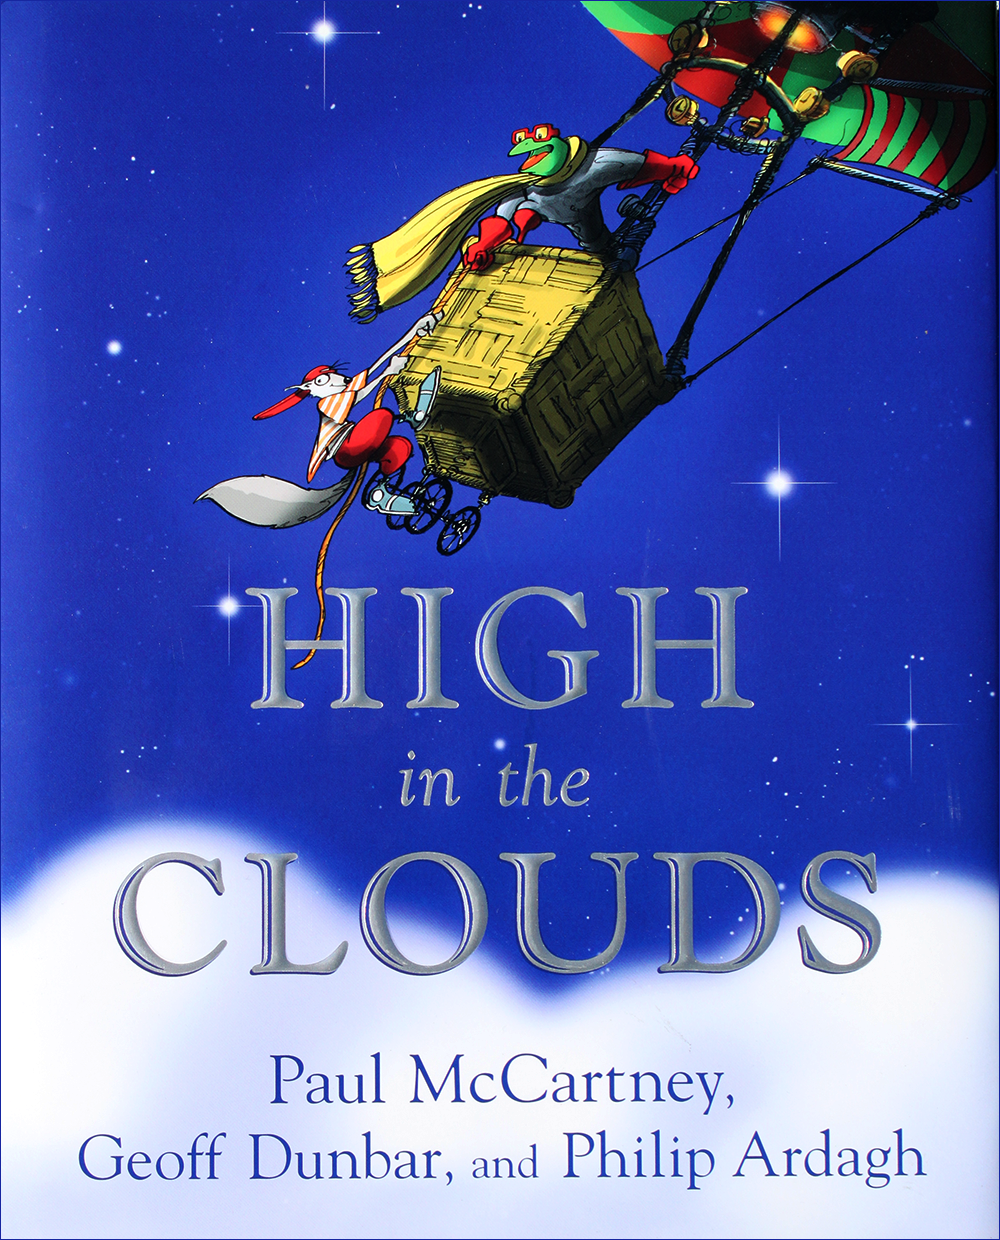 Book - High in the Clouds - Paul McCartney